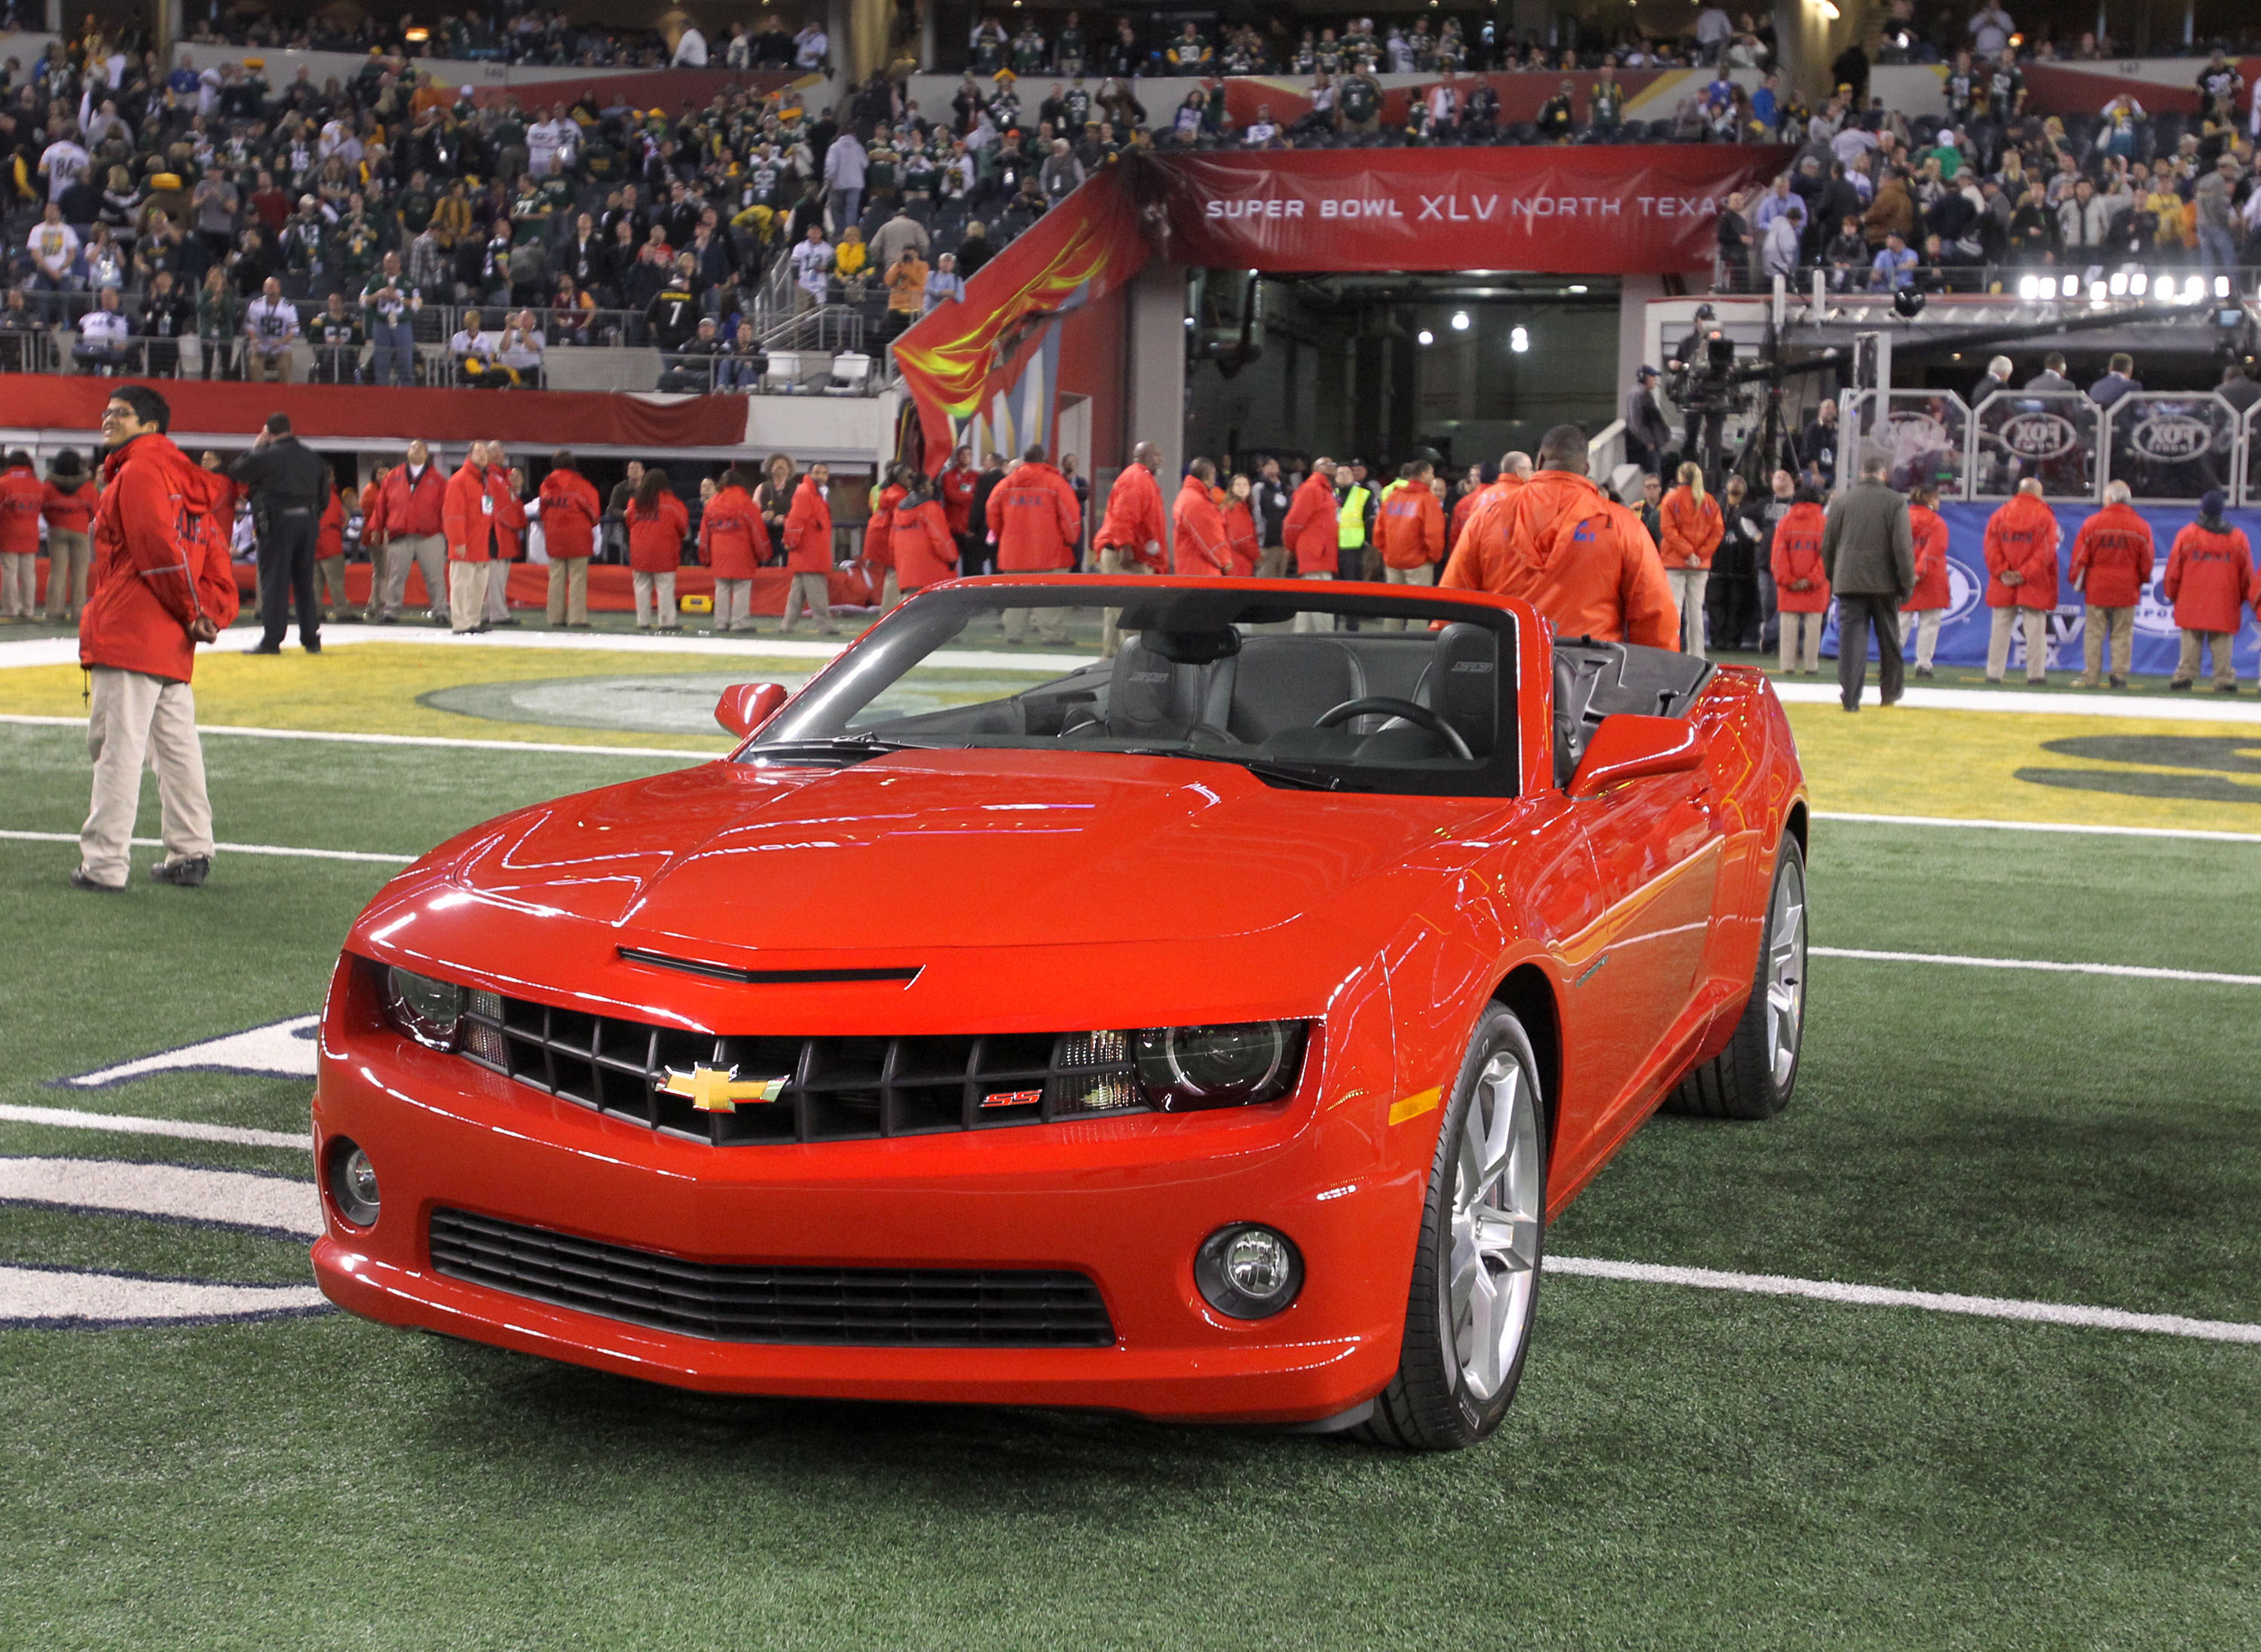 super bowl xlv mvp aaron rogers received a 2011 chevy. Black Bedroom Furniture Sets. Home Design Ideas